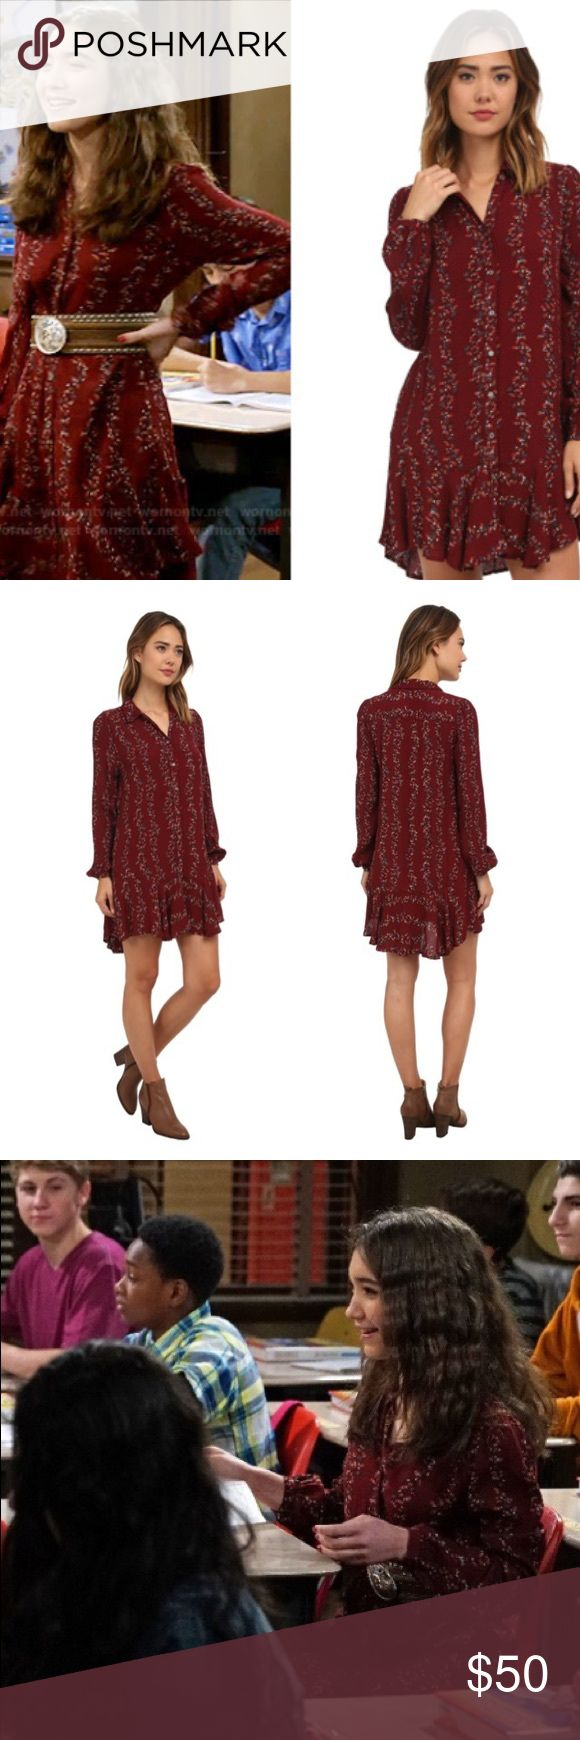 Free People cranberry shirt dress size small Free People as seen on girl meets world  Women's Cranberry Red Slubby Crinkle Button Down Shirtdress - Smoke Combo size small pre loved condition Free People Dresses Mini